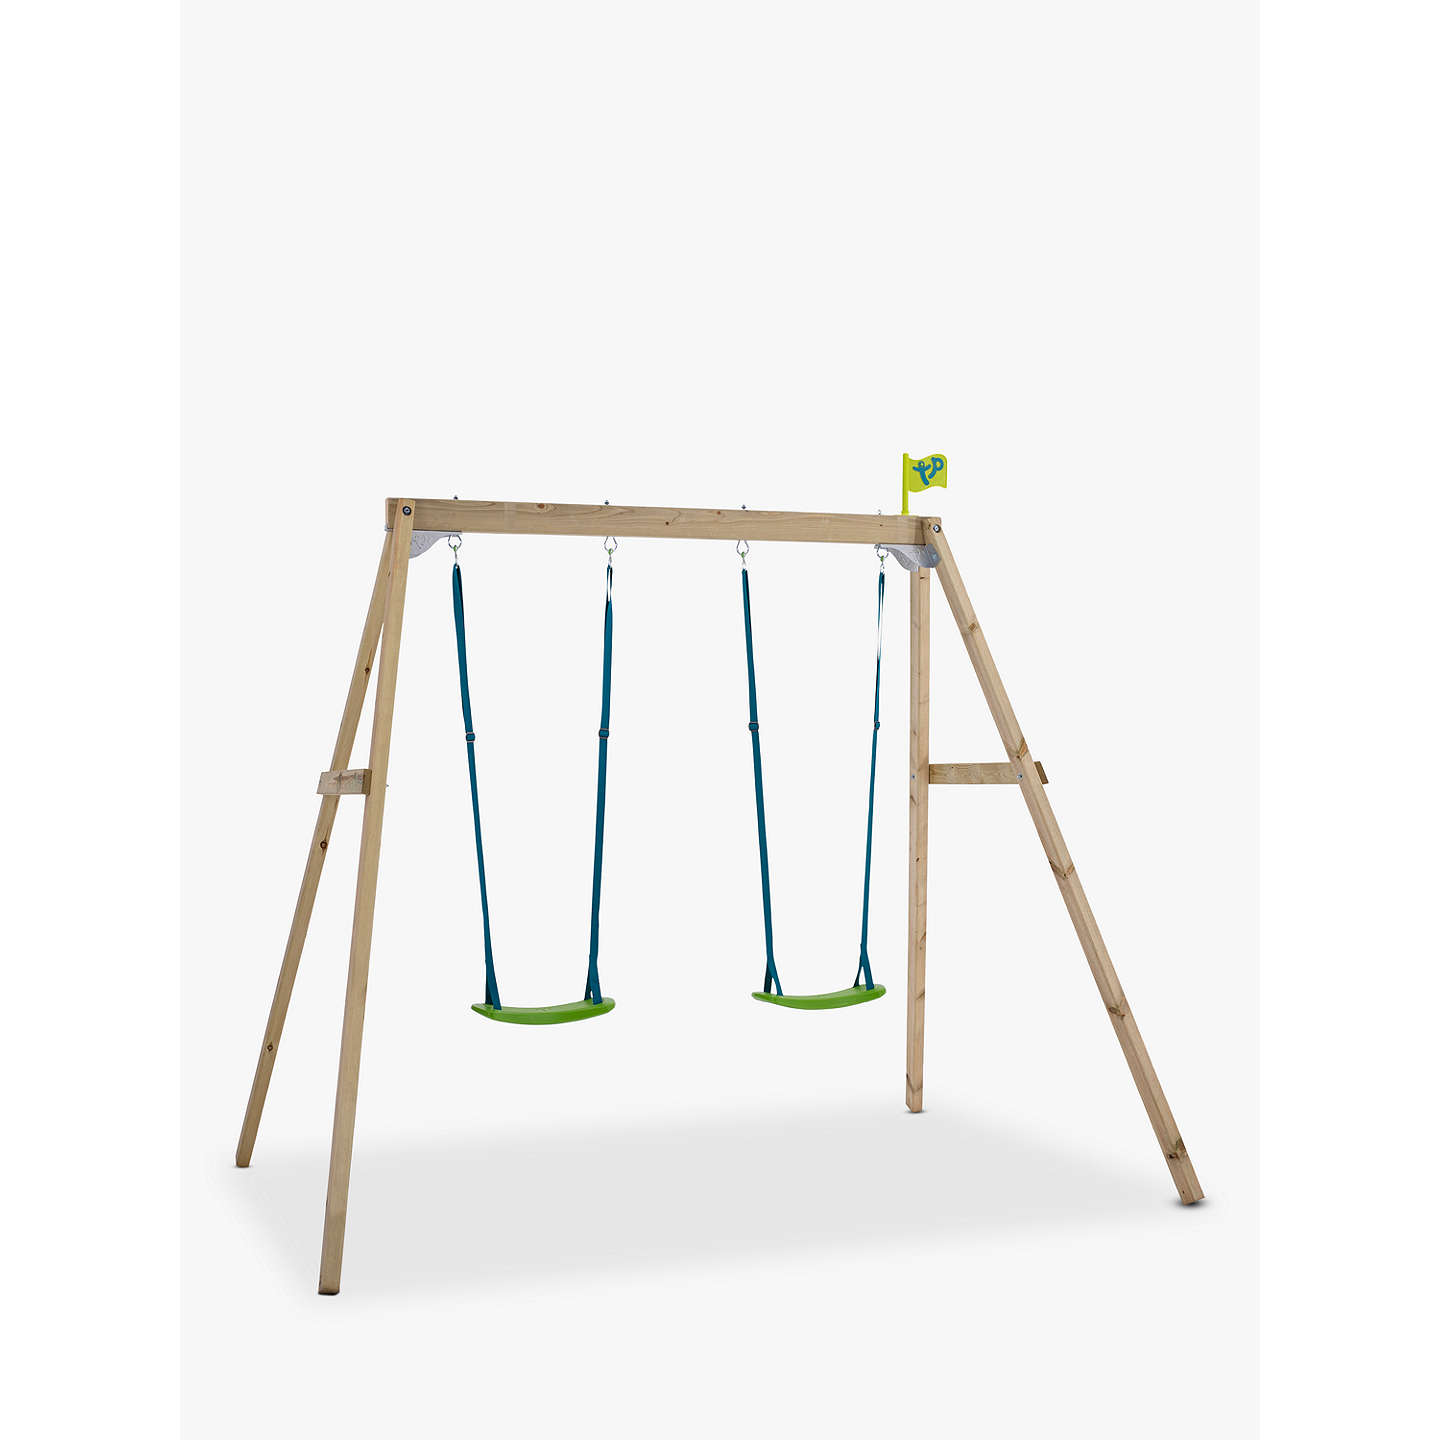 TP Toys TP304 Toys Forest Double Swing 2 at John Lewis